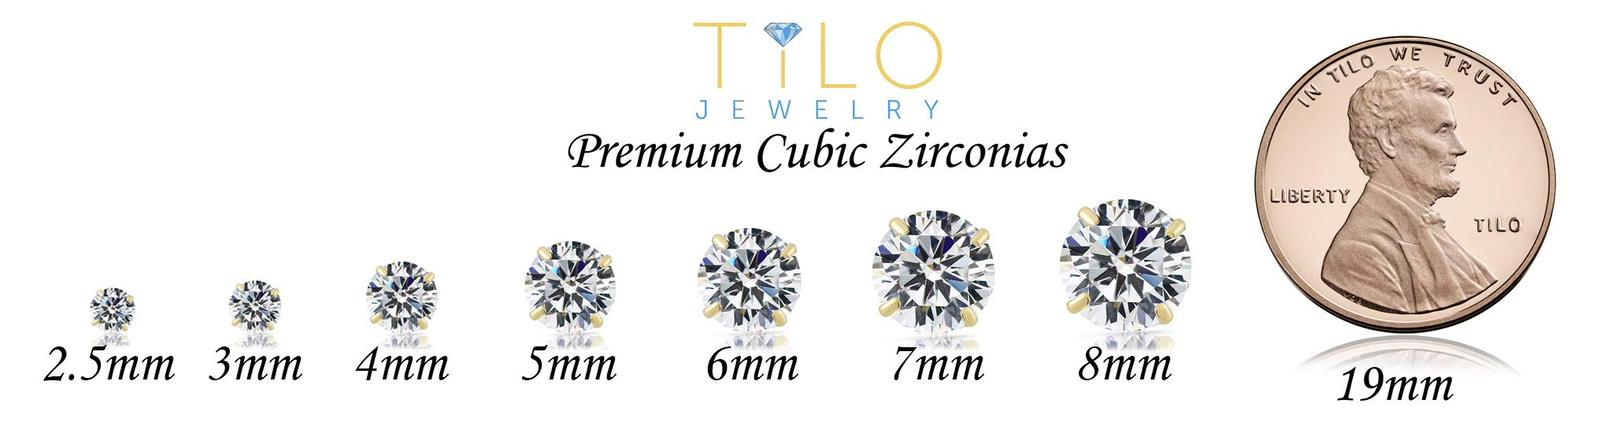 14k White Gold Solitaire Round Cubic Zirconia Stud Earrings with Gold butterfly  image 5